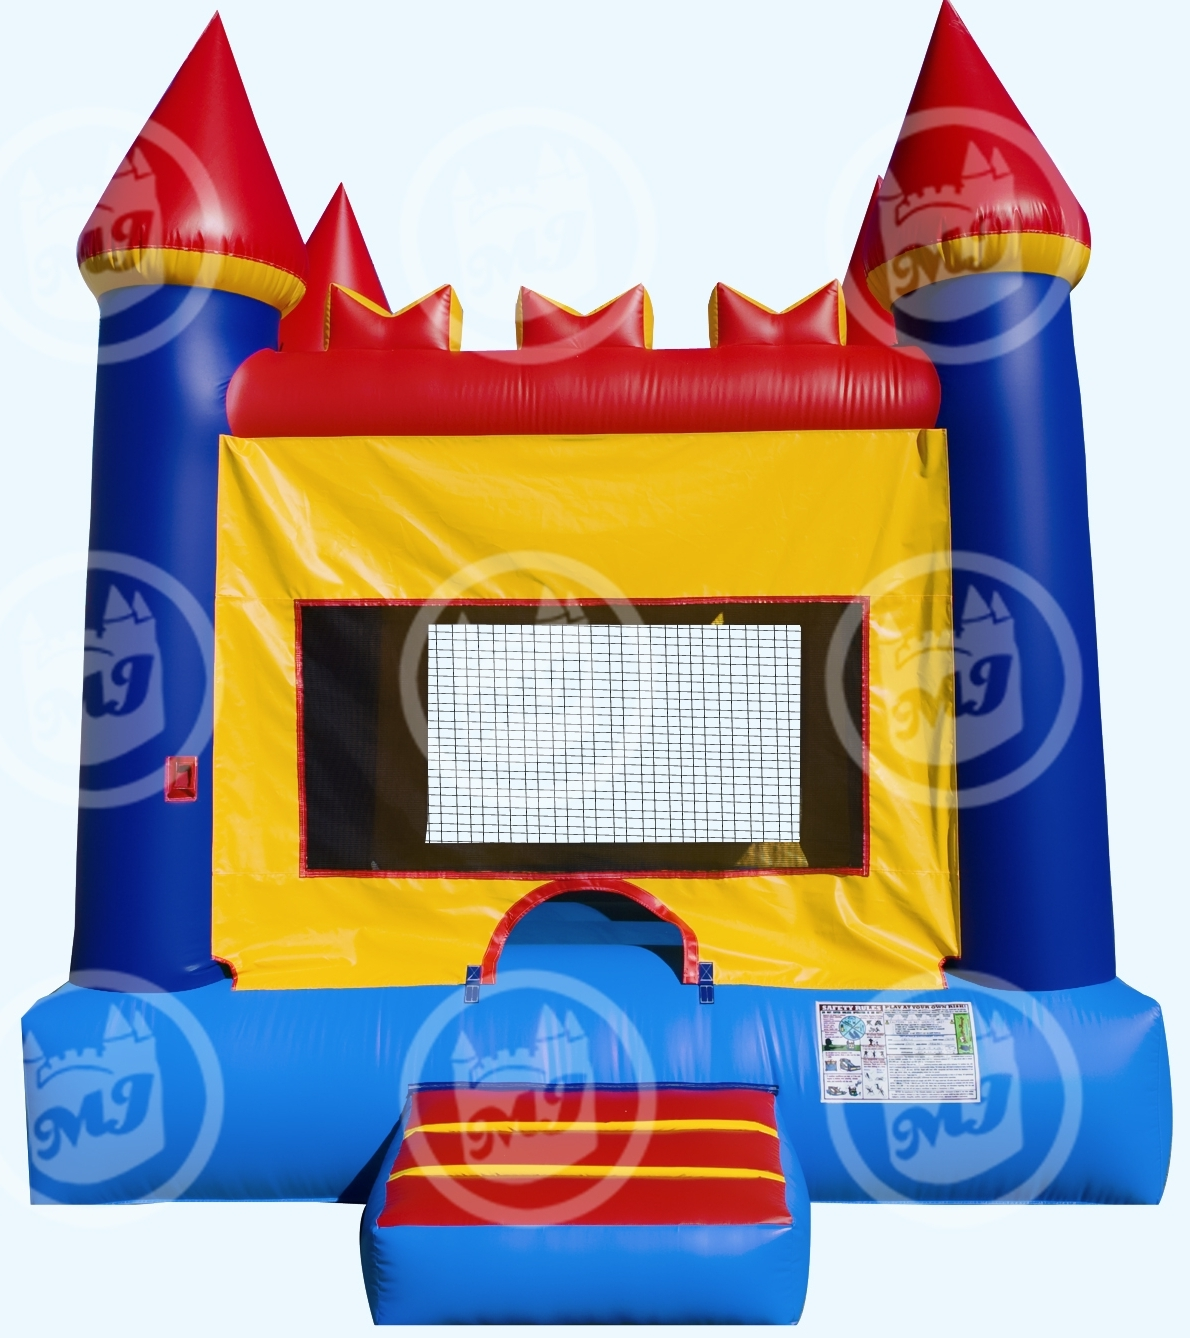 Fairfield Bounce House